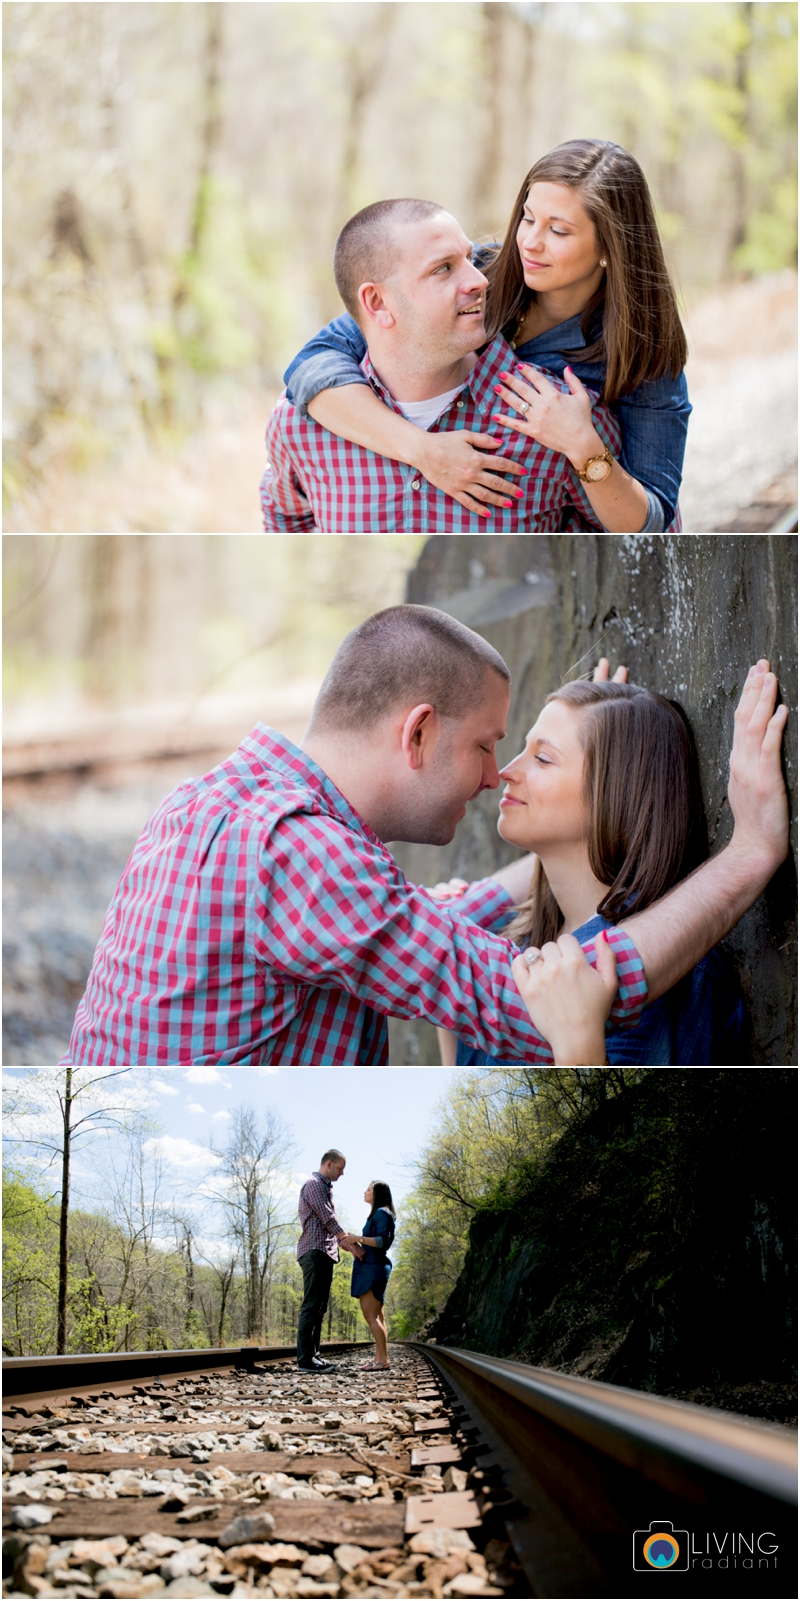 laurie-kevin-engagement-session-patapsco-state-park-ellicott-city-maryland-baltimore-outdoor-living-radiant-photography-maggie-nolan-patrick-nolan_0013.jpg